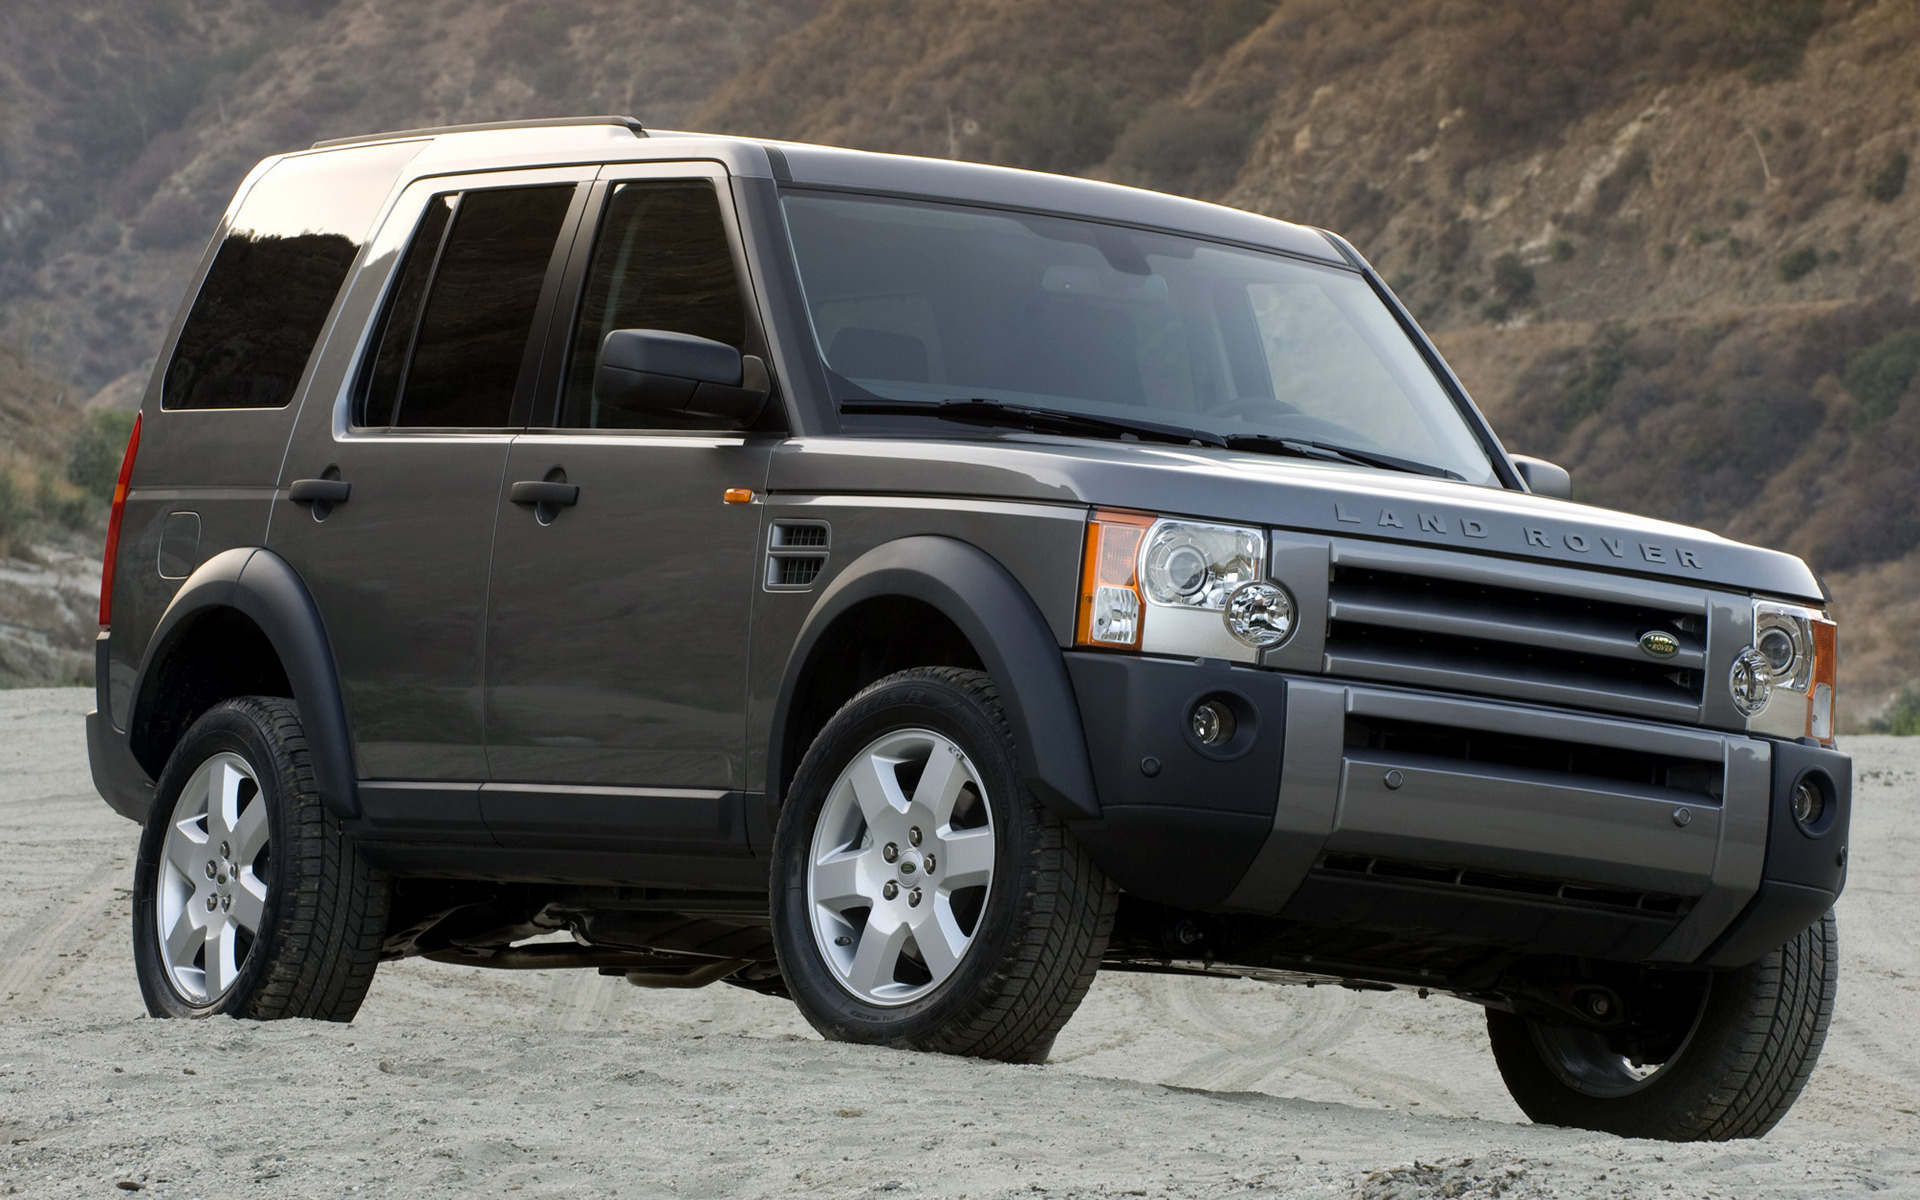 hse discovery luxury wiki landrover sport land wikipedia rover